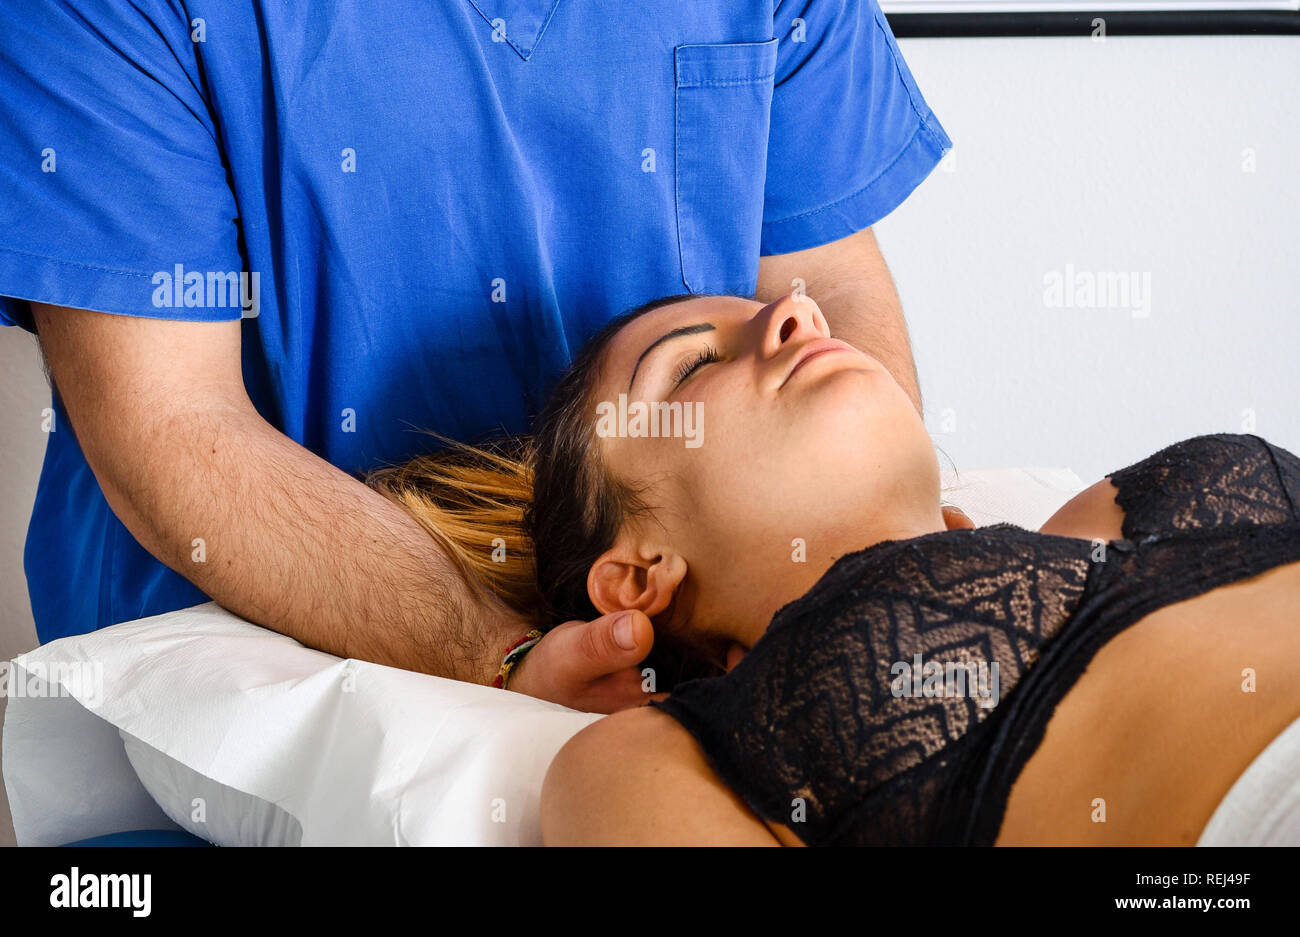 Osteopath manipulating the neck of a young woman as she lies on a couch in his consulting room in a close up view on his hands - Stock Image